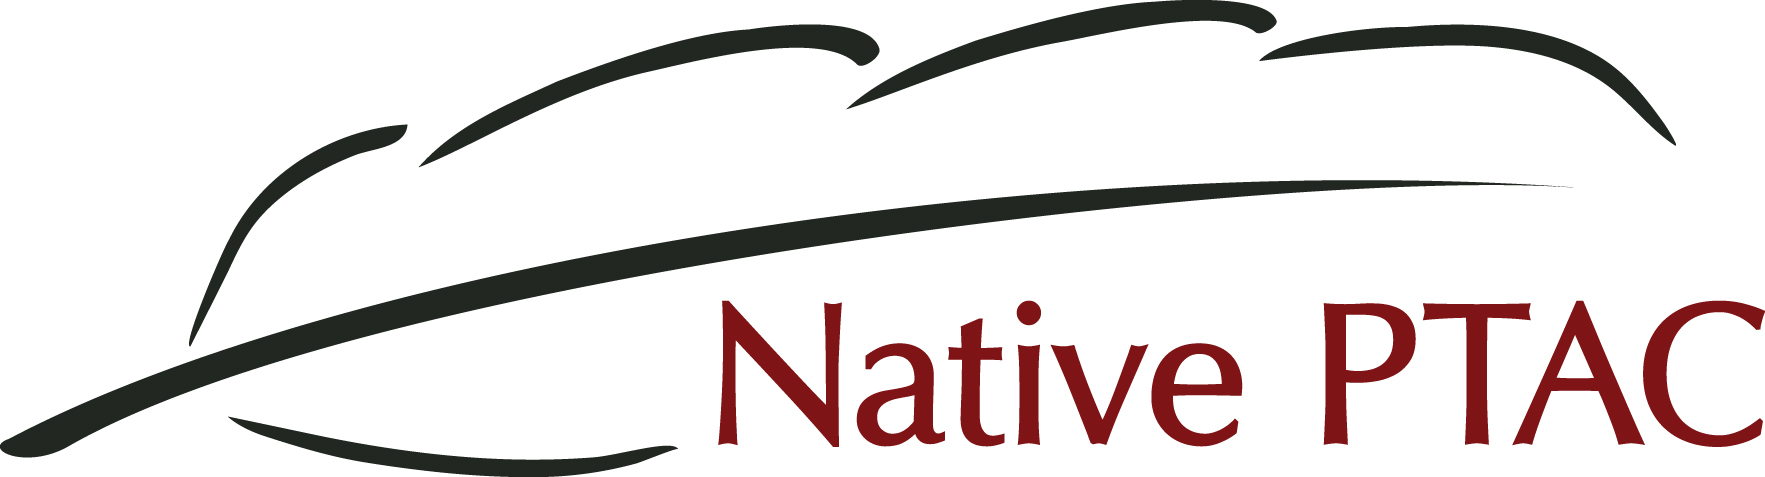 Native PTAC